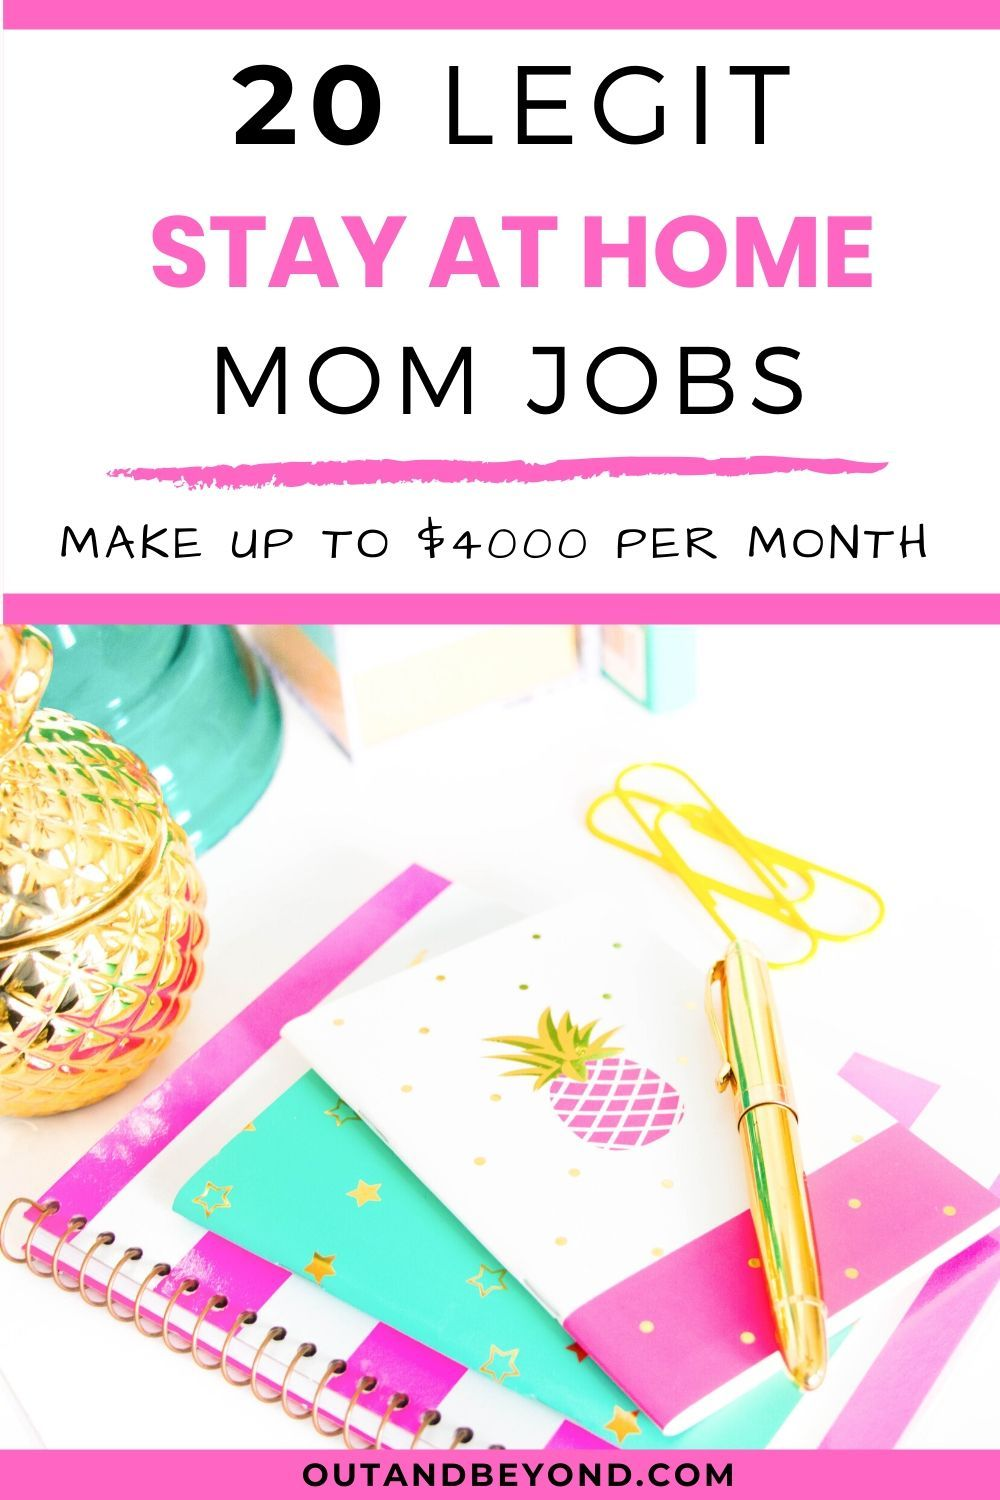 20 Legit Stay At Home Mom Jobs (That pay well) in 2020